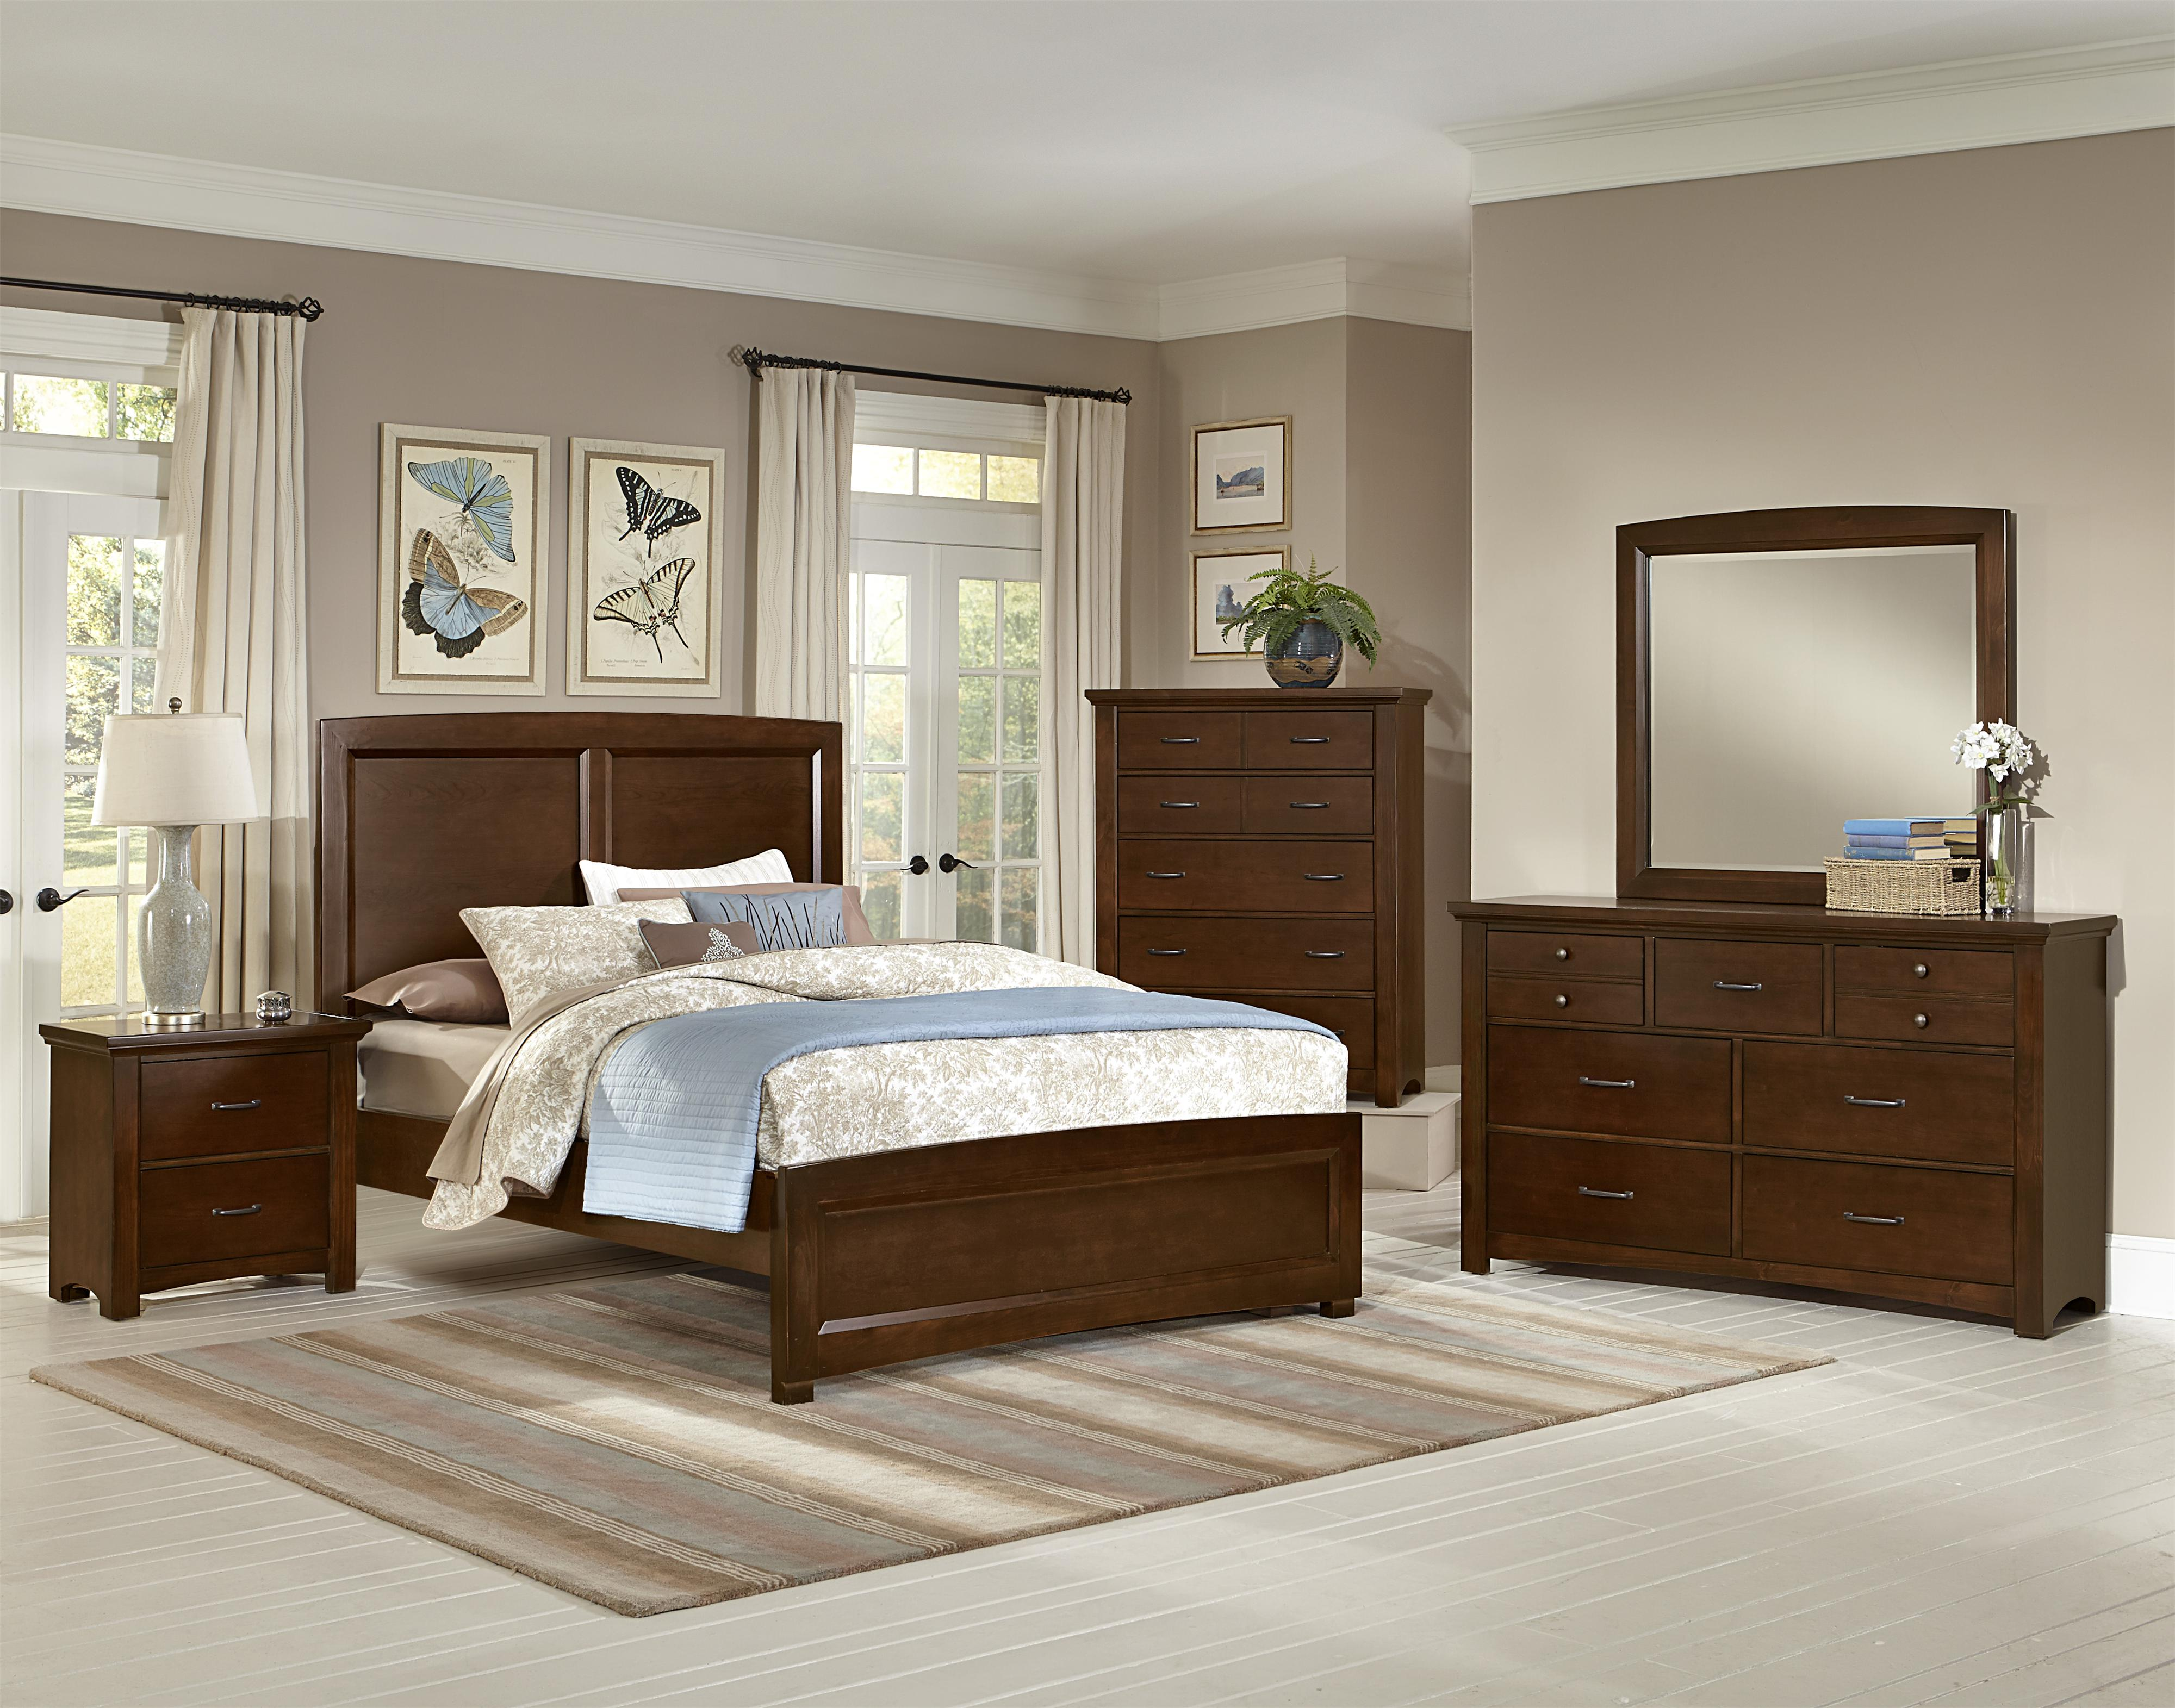 vaughan bassett transitions queen bedroom group belfort 17708 | products 2fvaughan bassett 2fcolor 2ftransitions 20 2025422930 bb68 20q 20bedroom 20group 201 b0